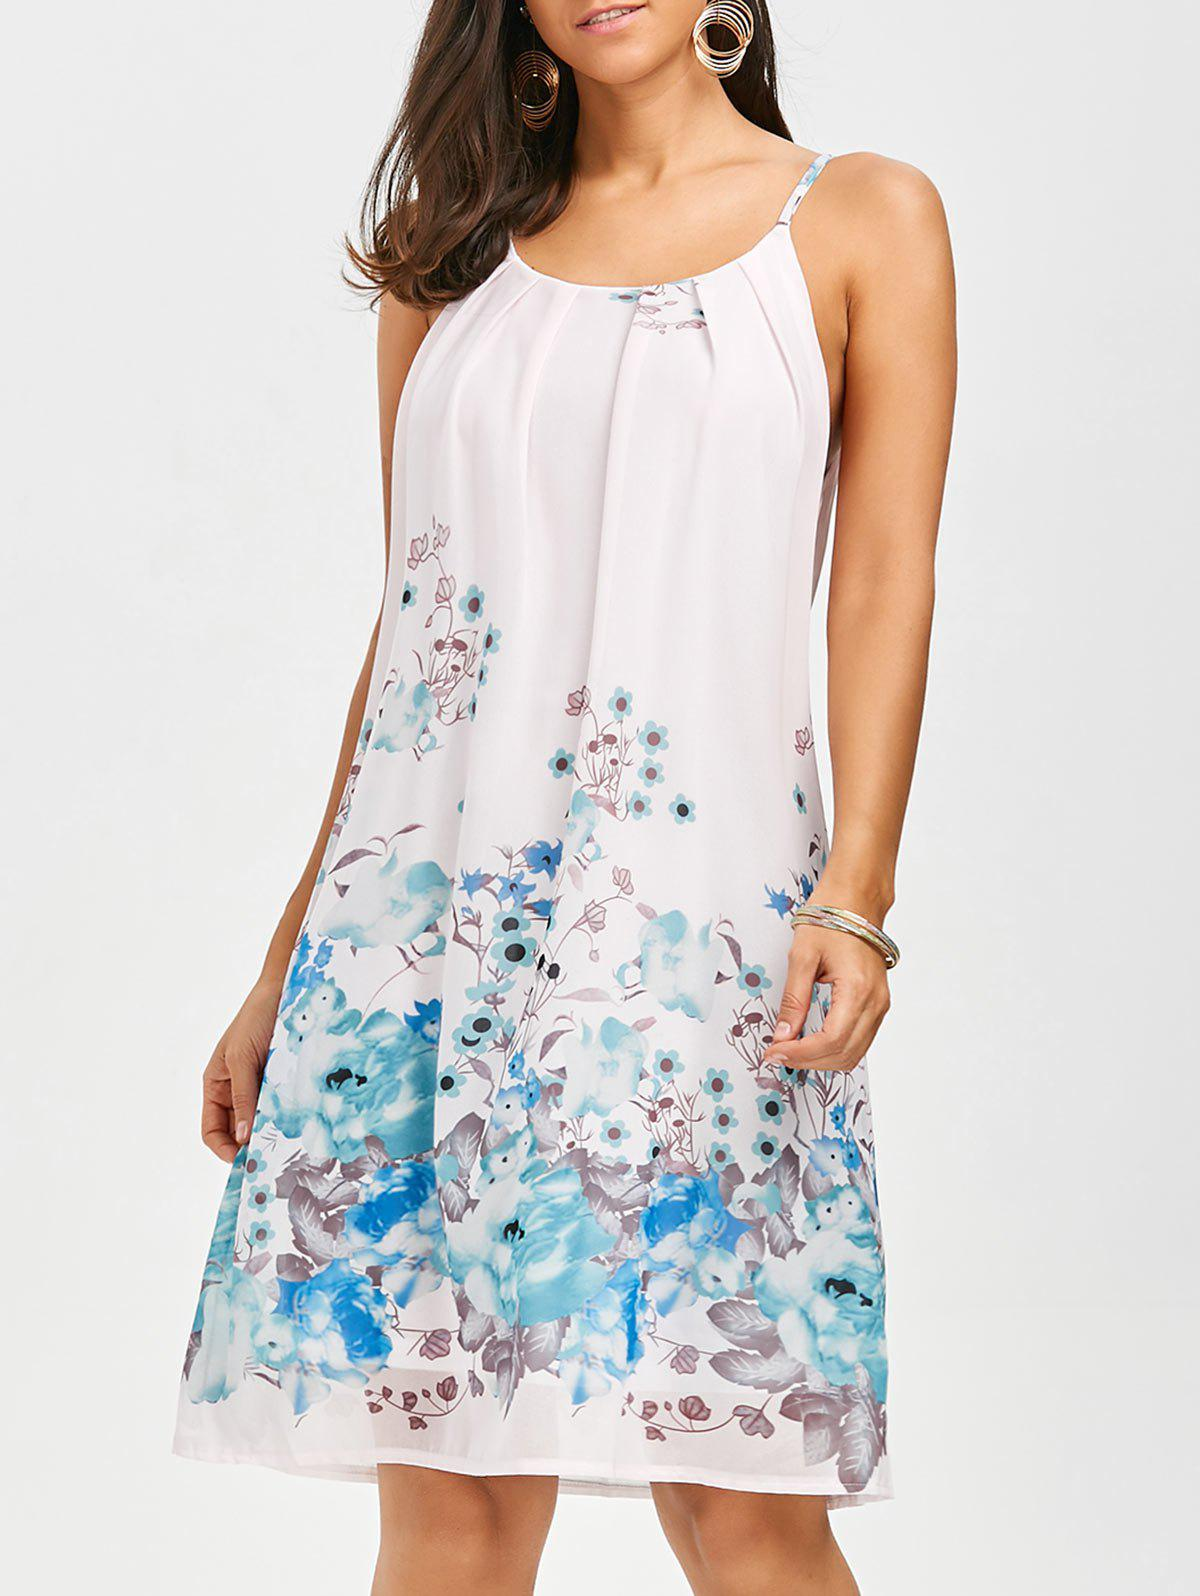 Floral Chiffon Mini Slip Dress - FLORAL M